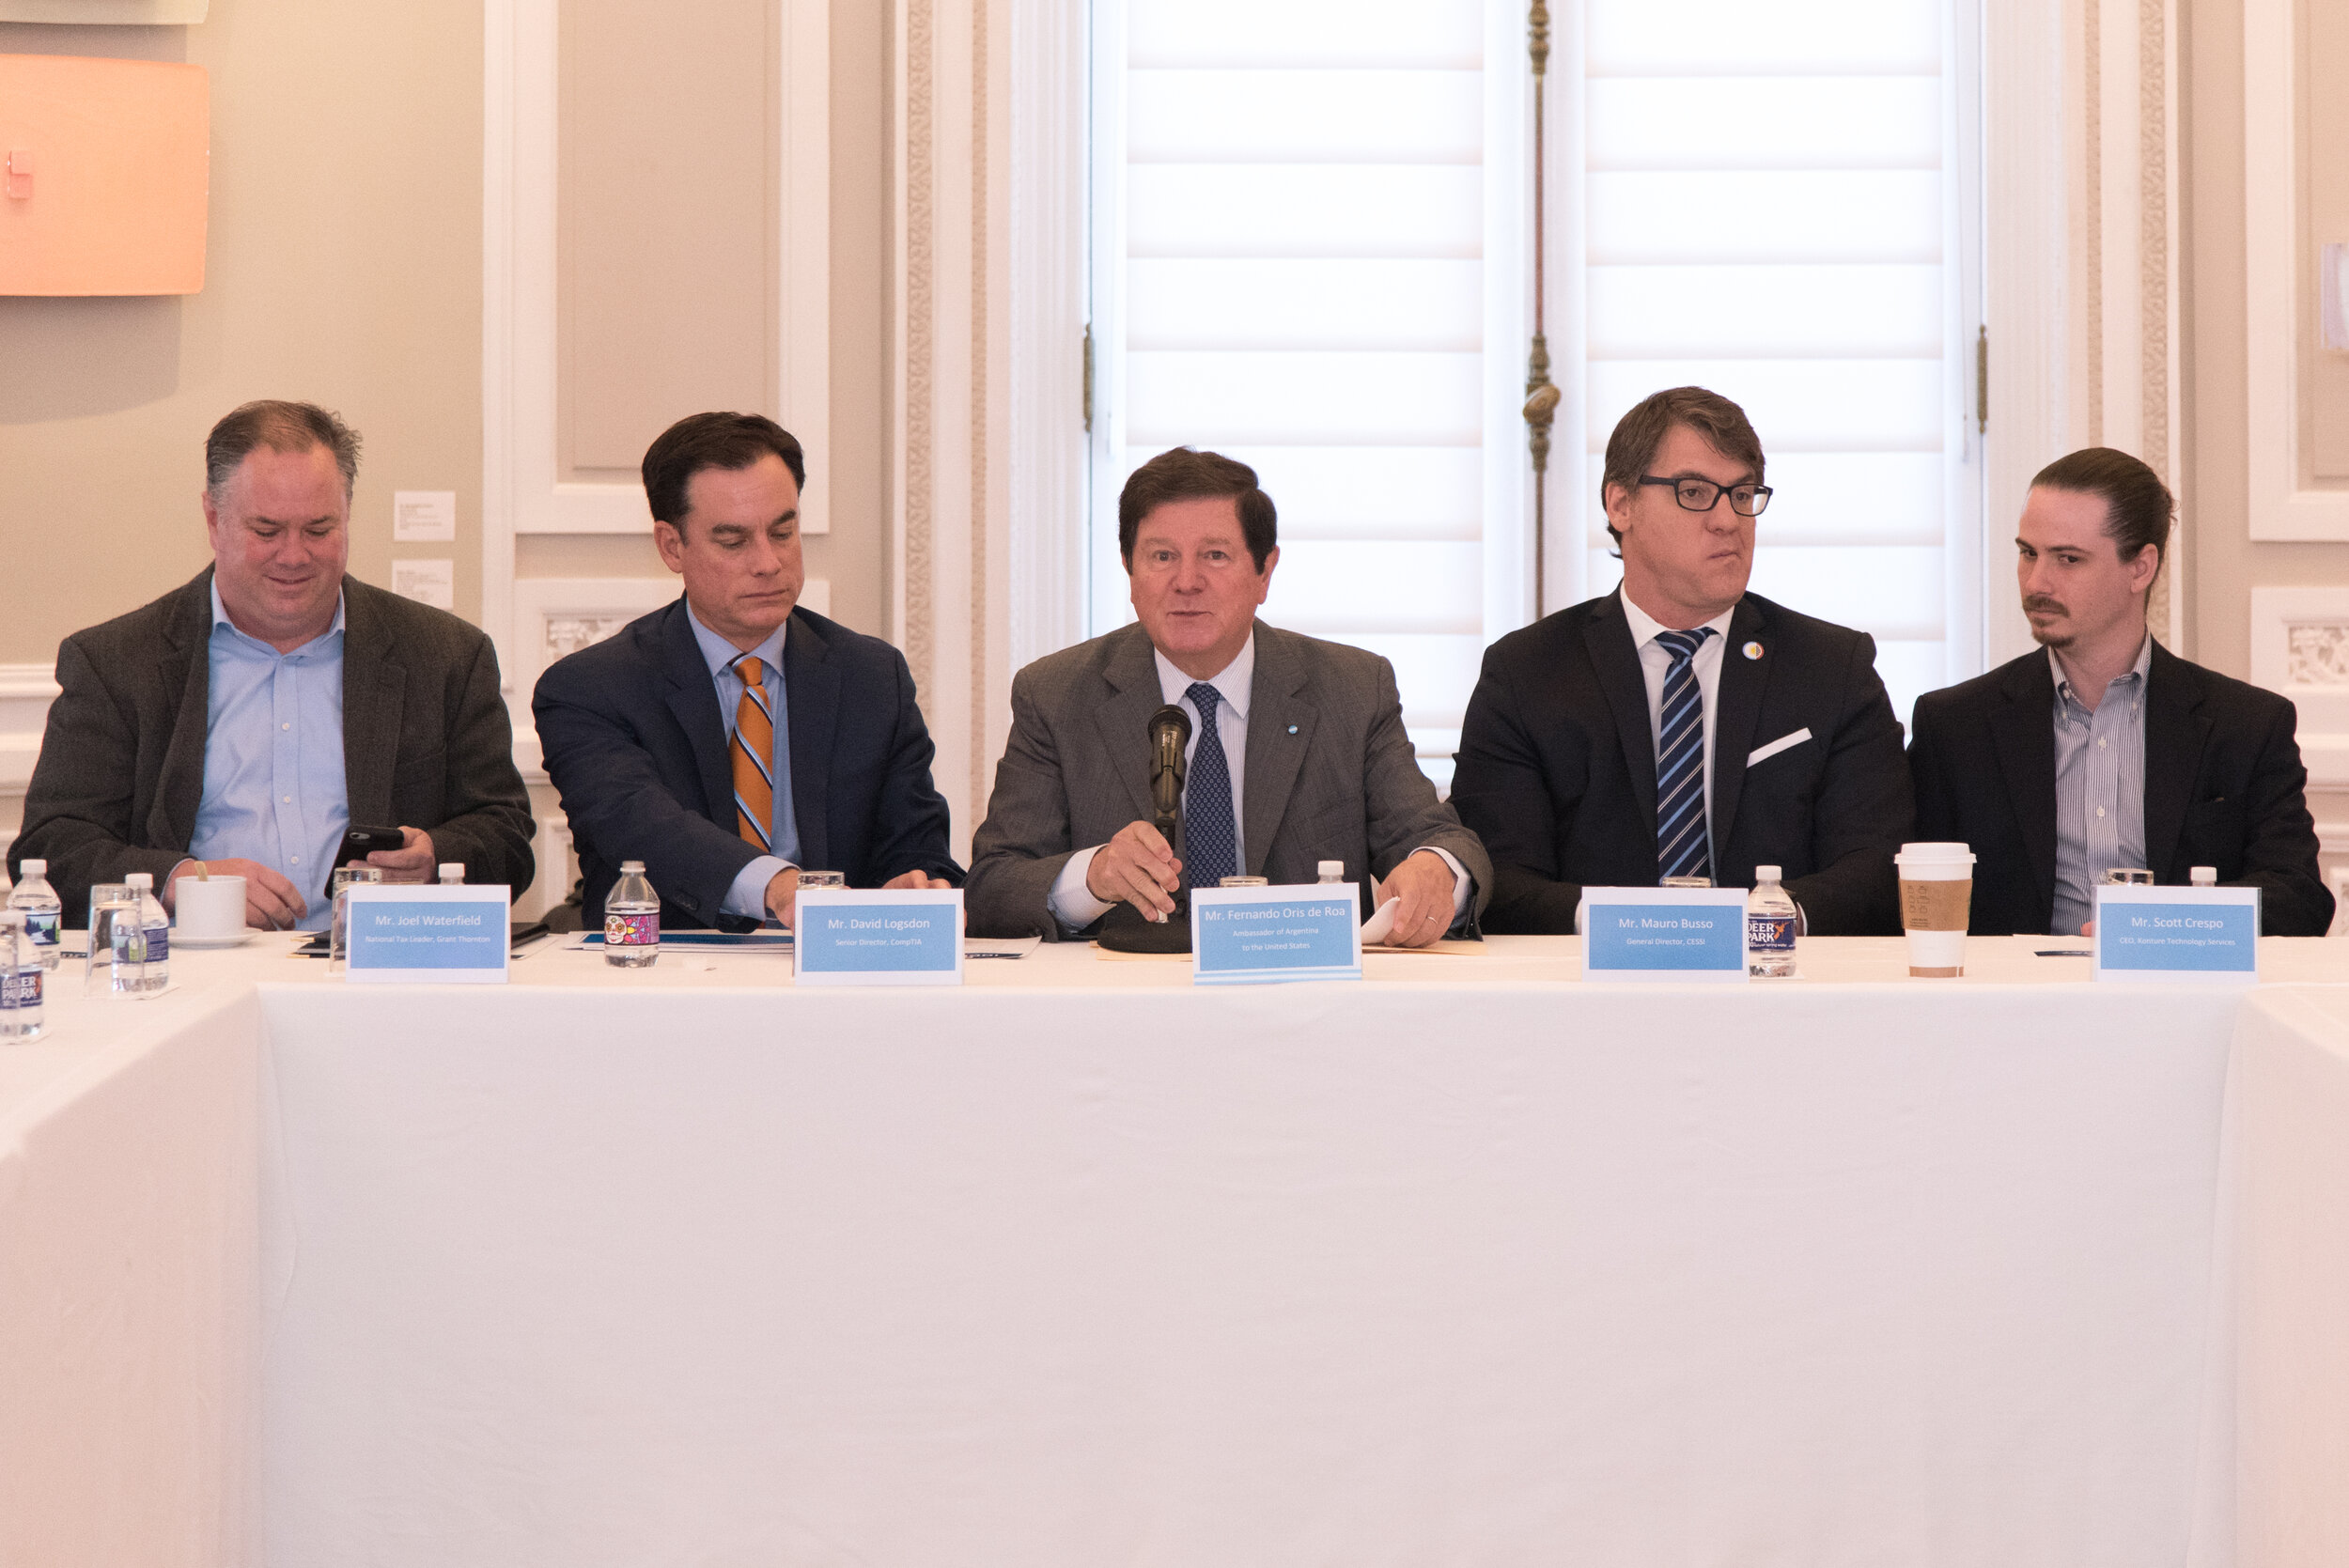 The Ambassador Fernando Oris de Roa providing opening remarks about the technology industry in Argentina.  Photo courtesy of the Argentinian Embassy.